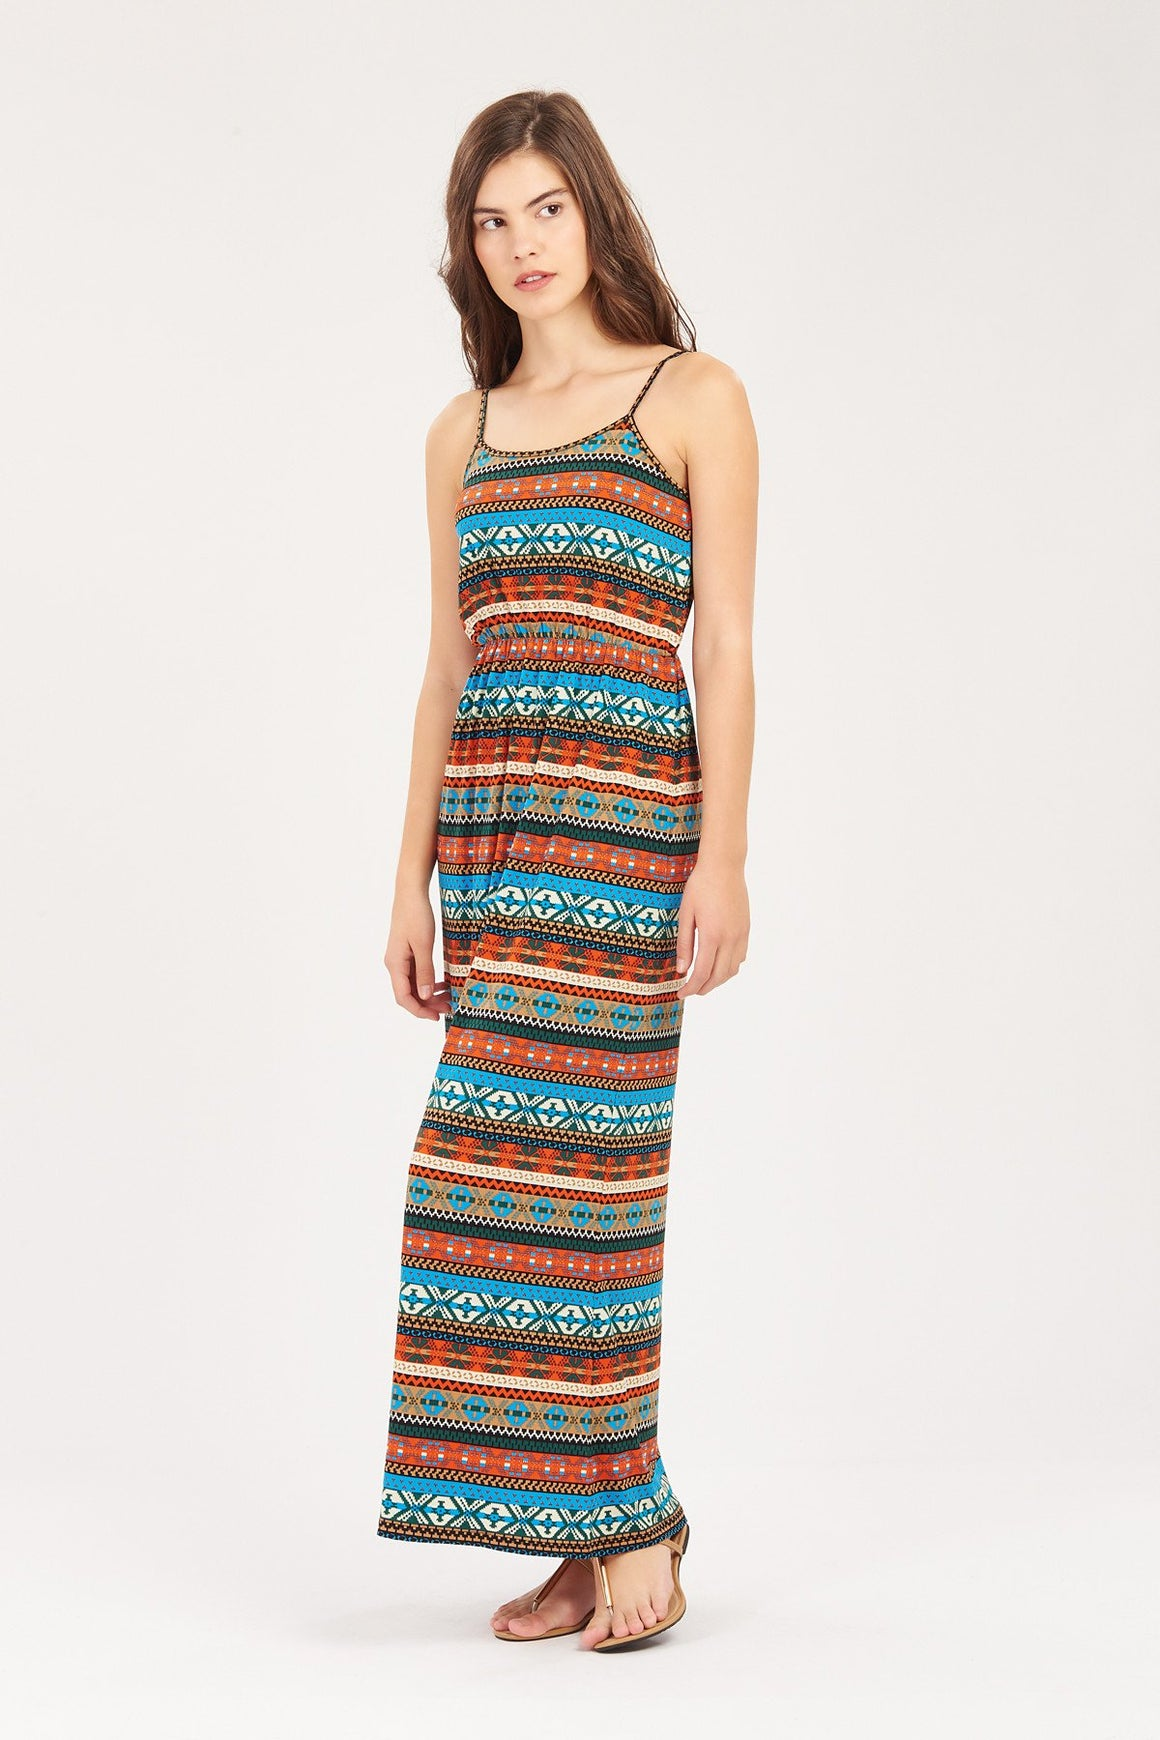 GFLOCK - [product_sku] - Women_Dresses - Tribal Striped Maxi Dress